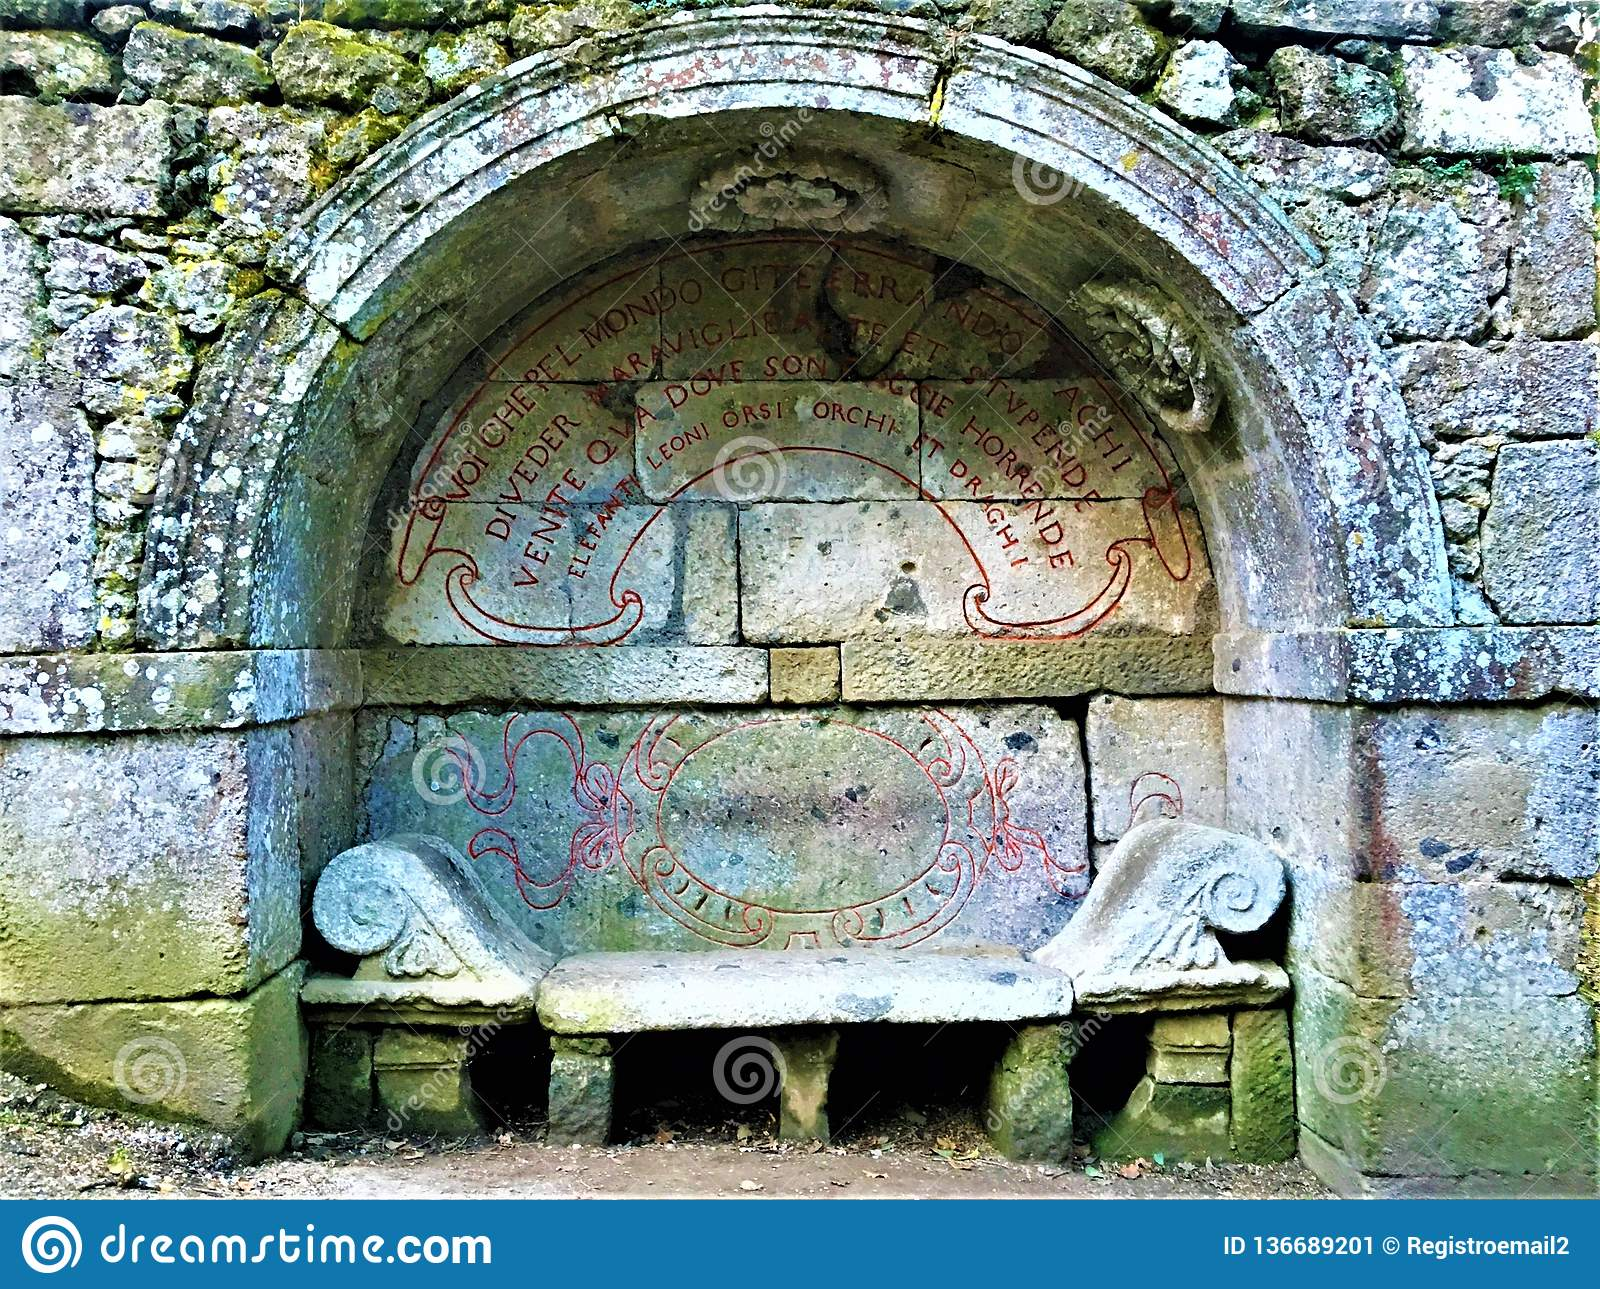 Park of the Monsters, Sacred Grove, Garden of Bomarzo. Etruscan bench and alchemy